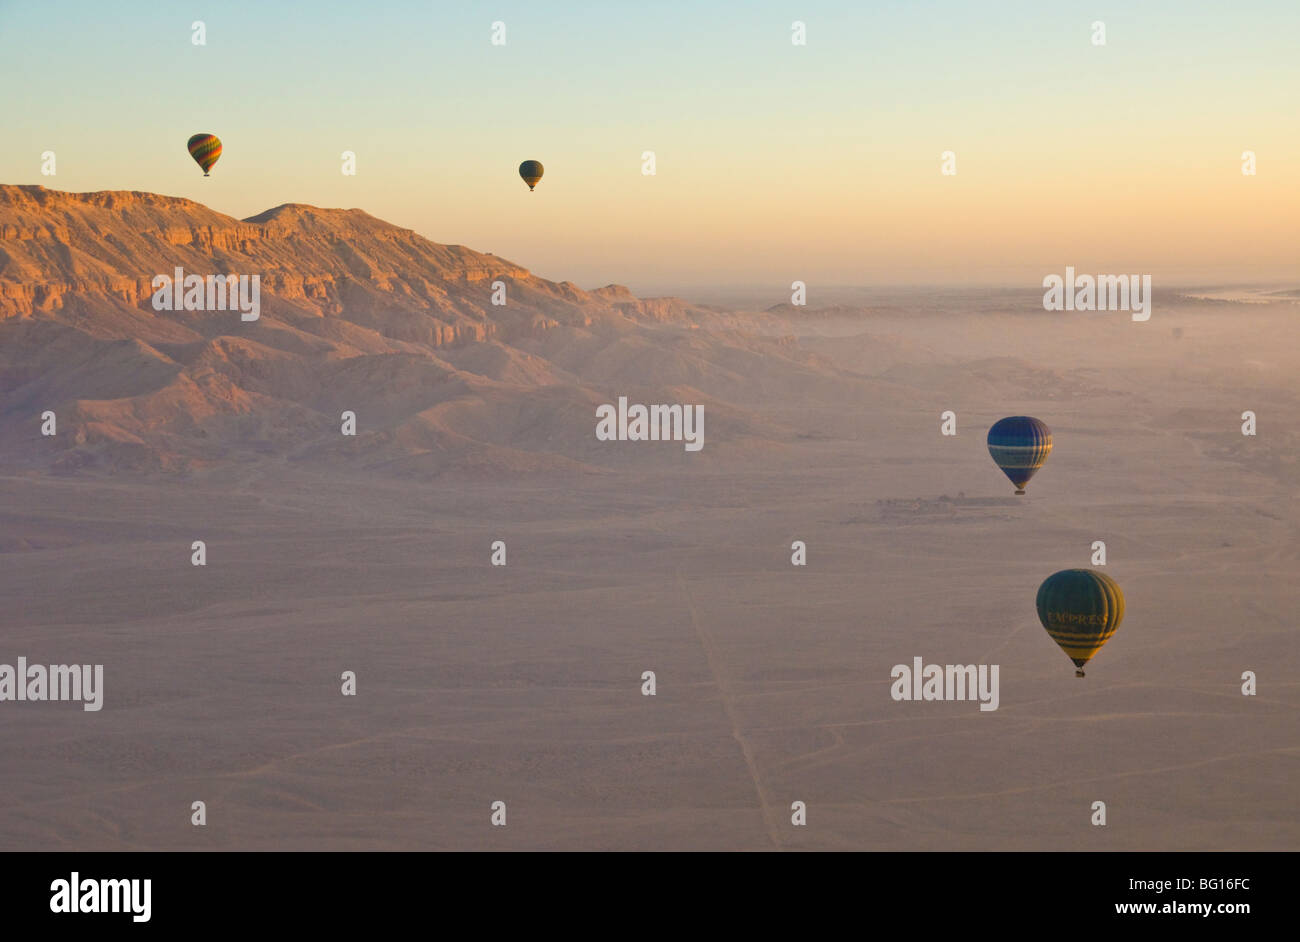 Hot air balloons flying over desert at dawn on the West bank of the river Nile near Luxor, Egypt, North Africa - Stock Image